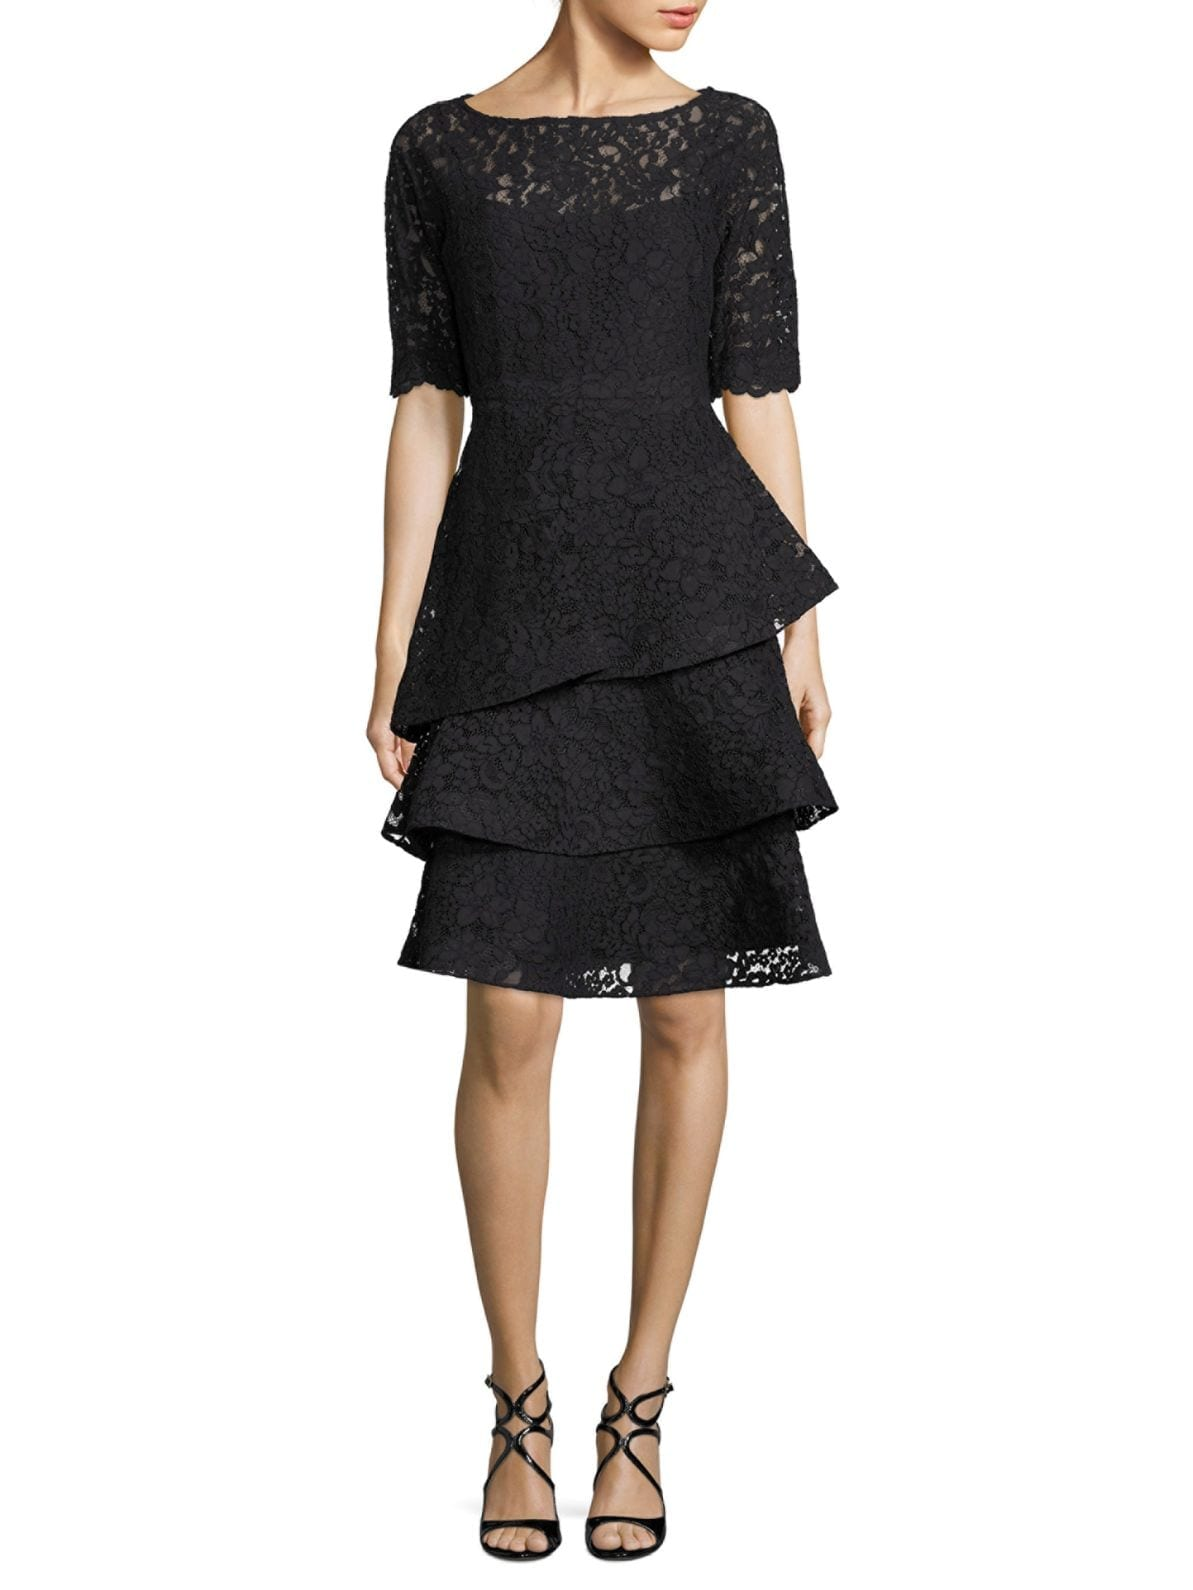 TERI JON BY RICKIE FREEMAN Lace Tiered Ruffle Black Dress